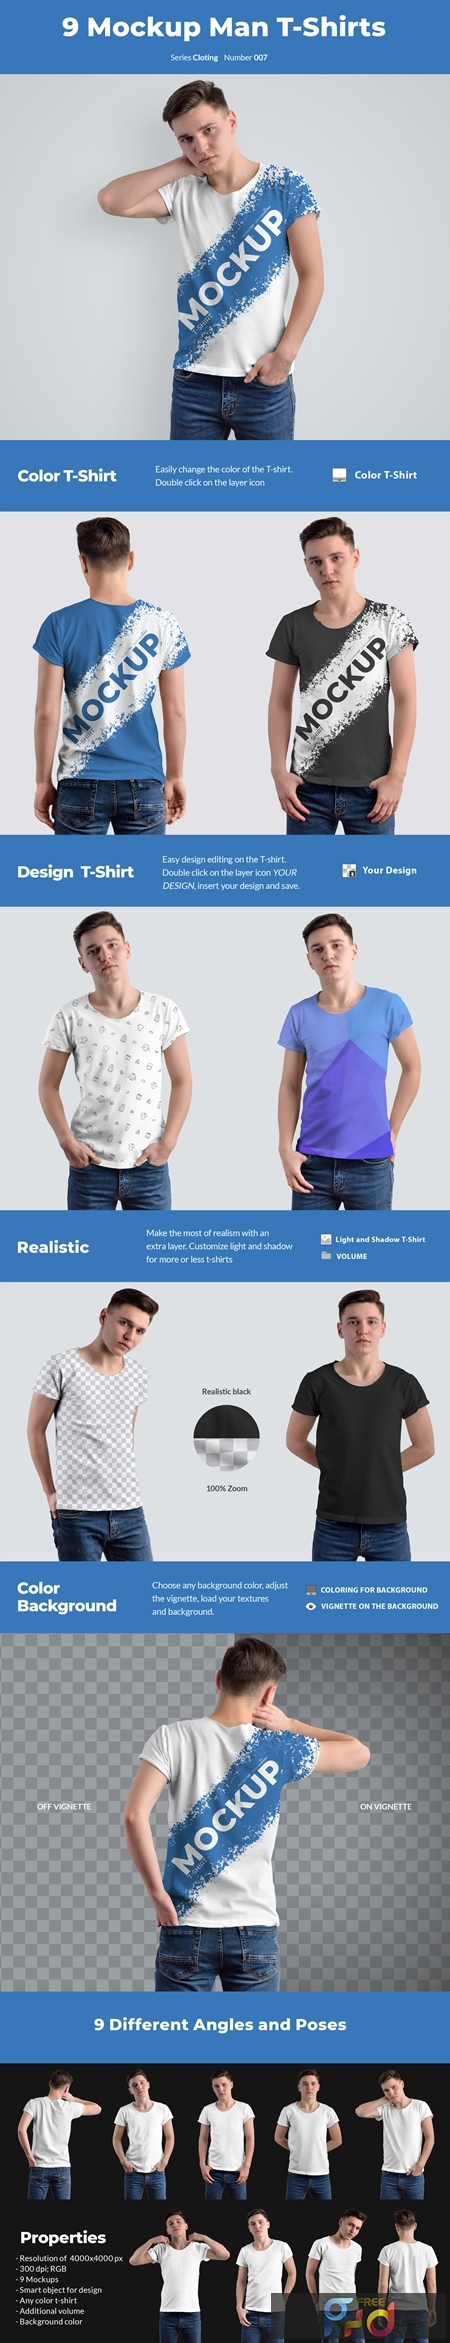 9 Mockups T-Shirts on the Mens 54352 1